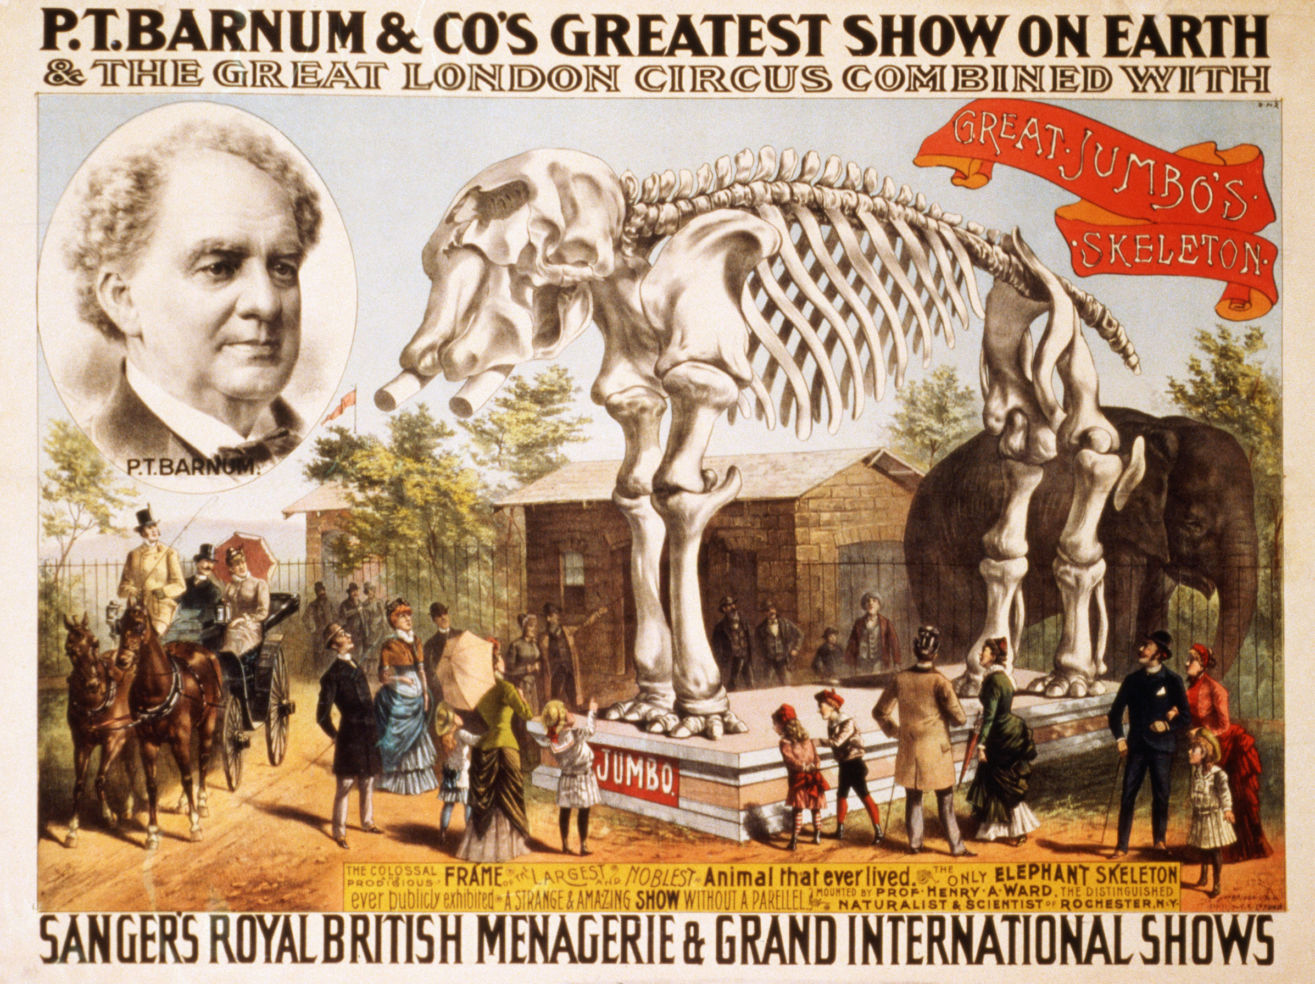 P.T. Barnum, circus poster, Great Jumbo's Skeleton, Barnum Museum, Bridgeport, Connecticut